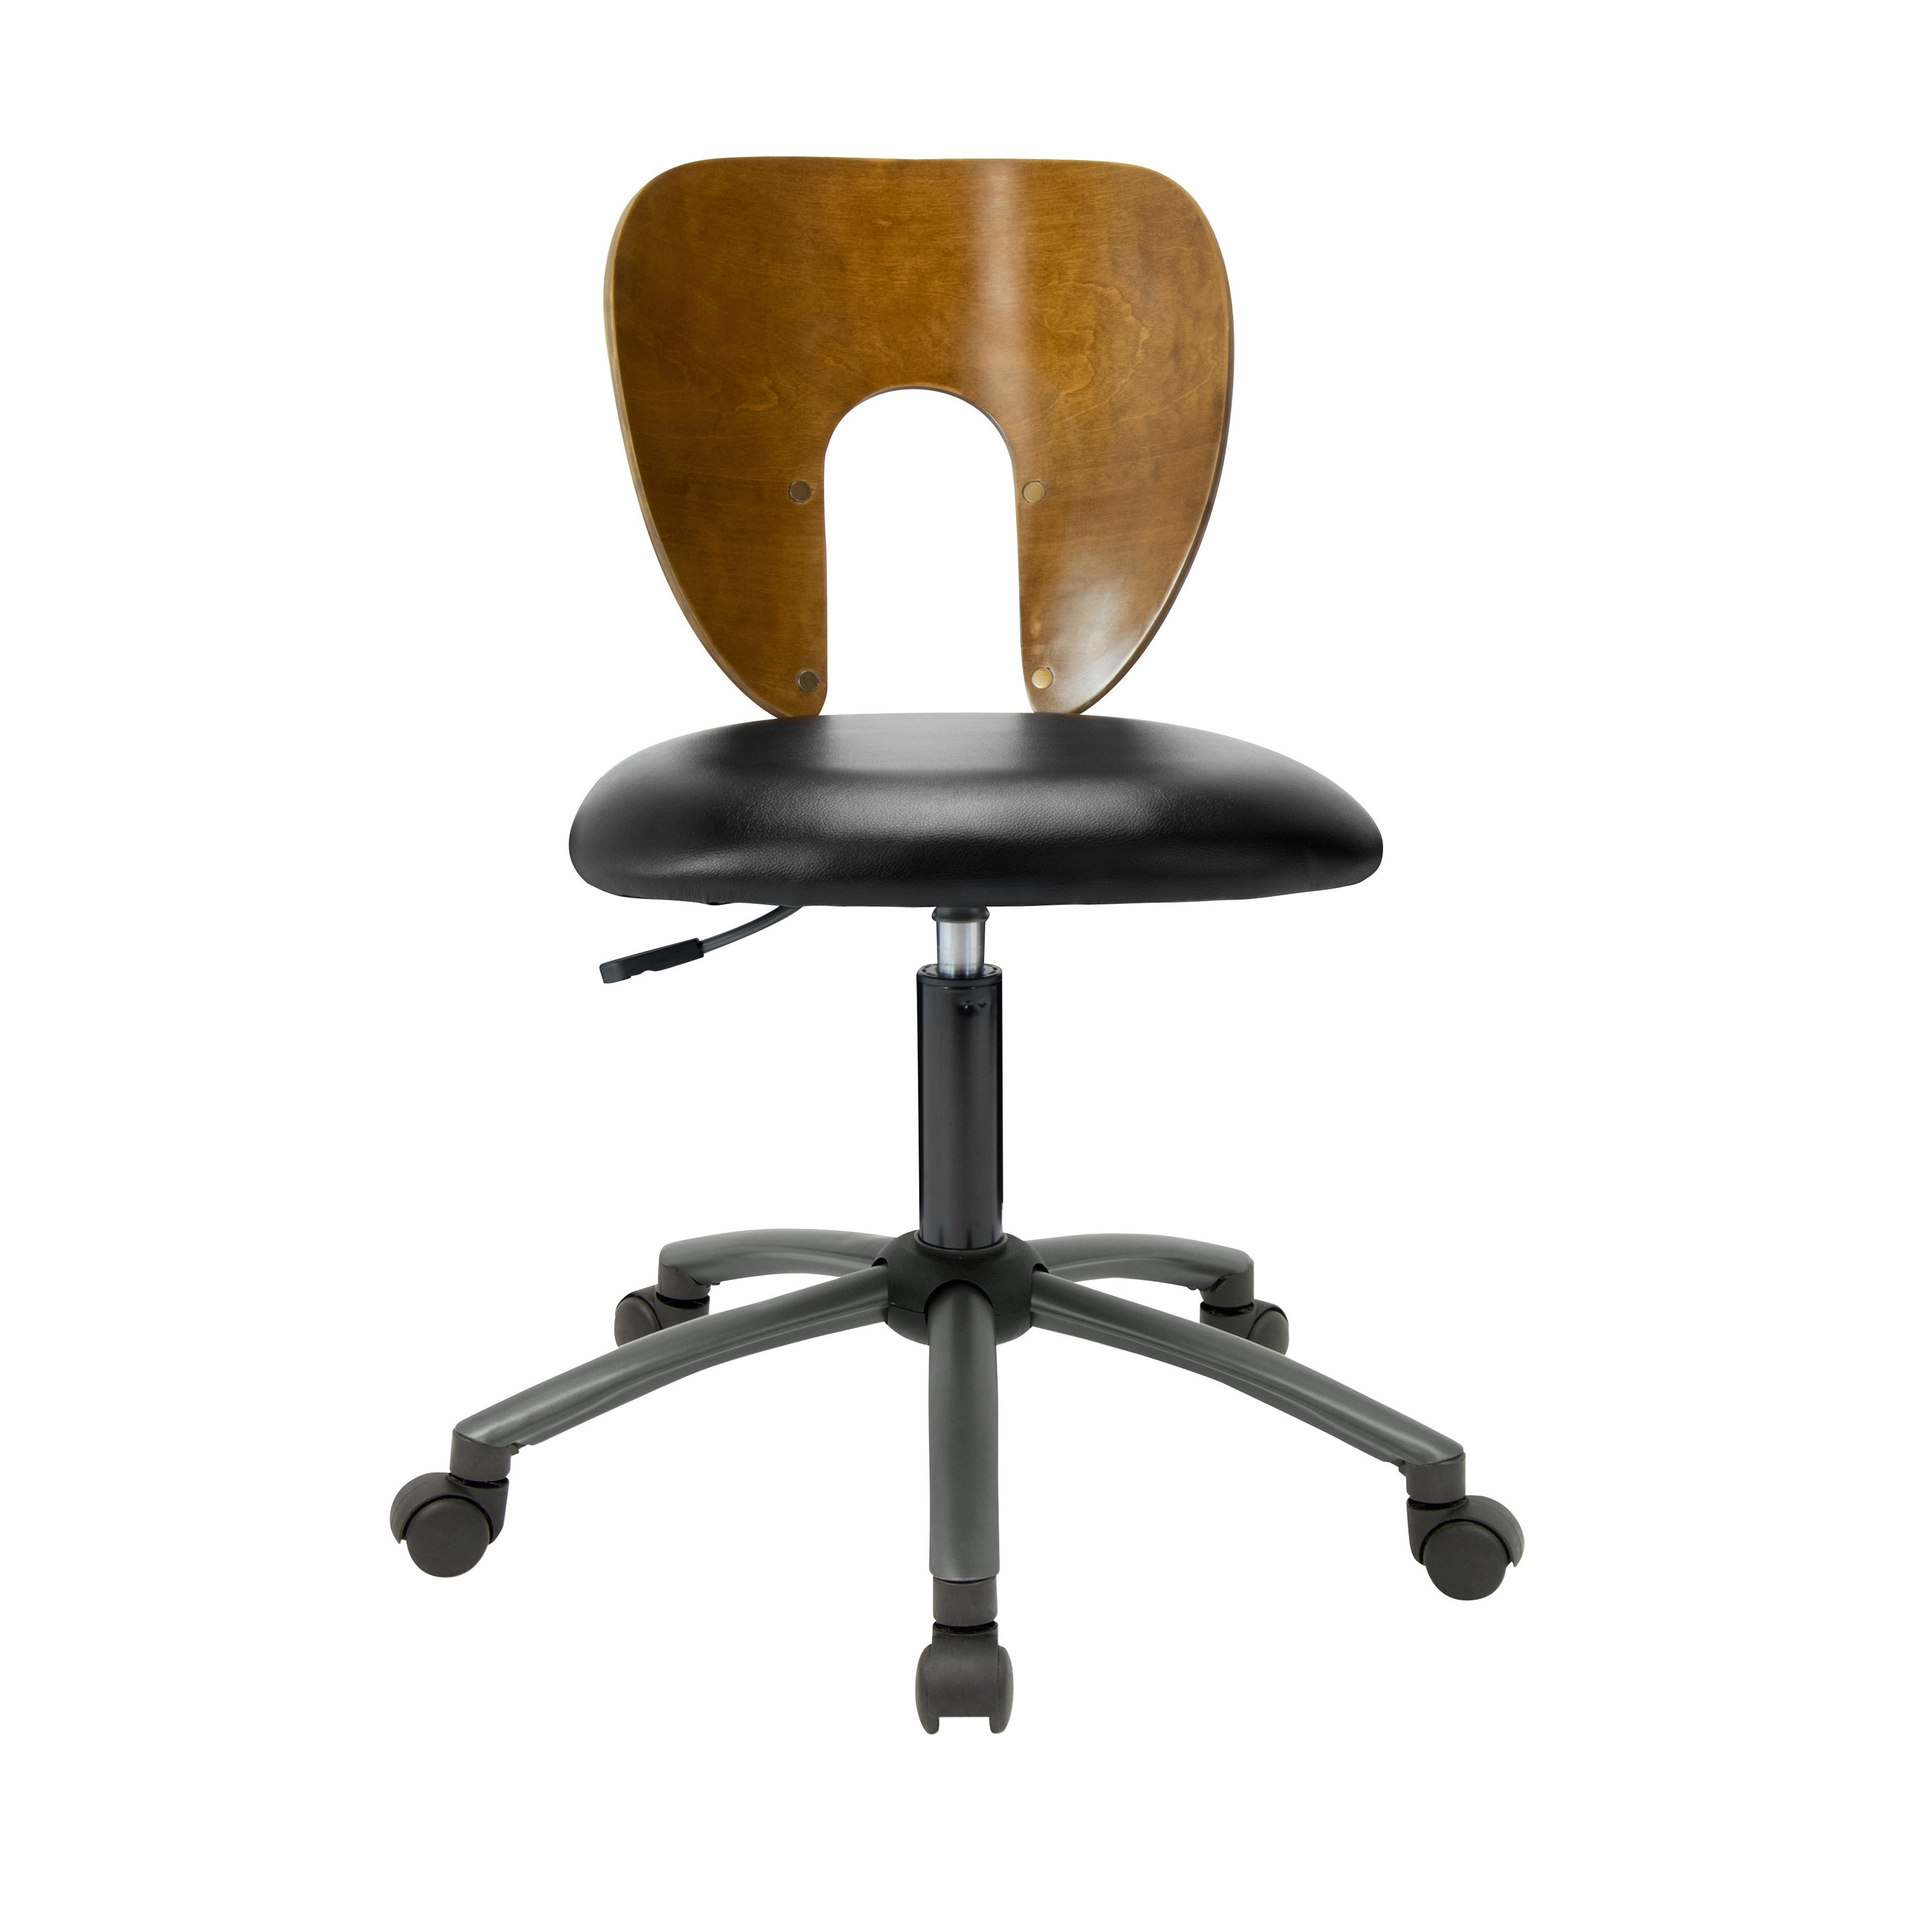 pewter chair good place to buy office chairs shop studio designs brown wood metal plastic ponderosa sonoma